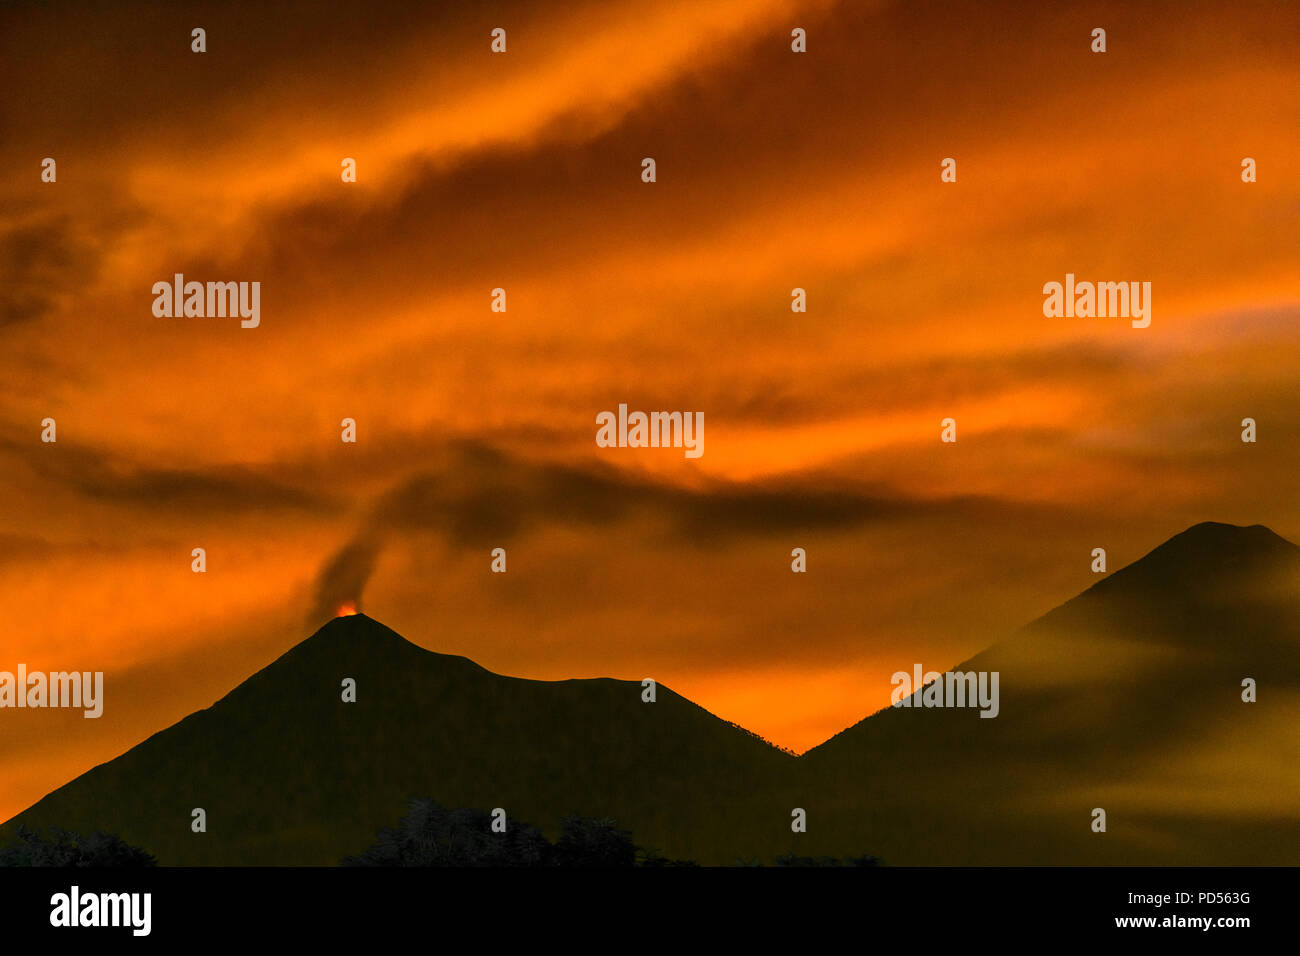 Fiery lava spurts from Fuego volcano in the Guatemalan highlands against fiery sunset hues as smoke ash clouds mingle with blur of clouds. - Stock Image